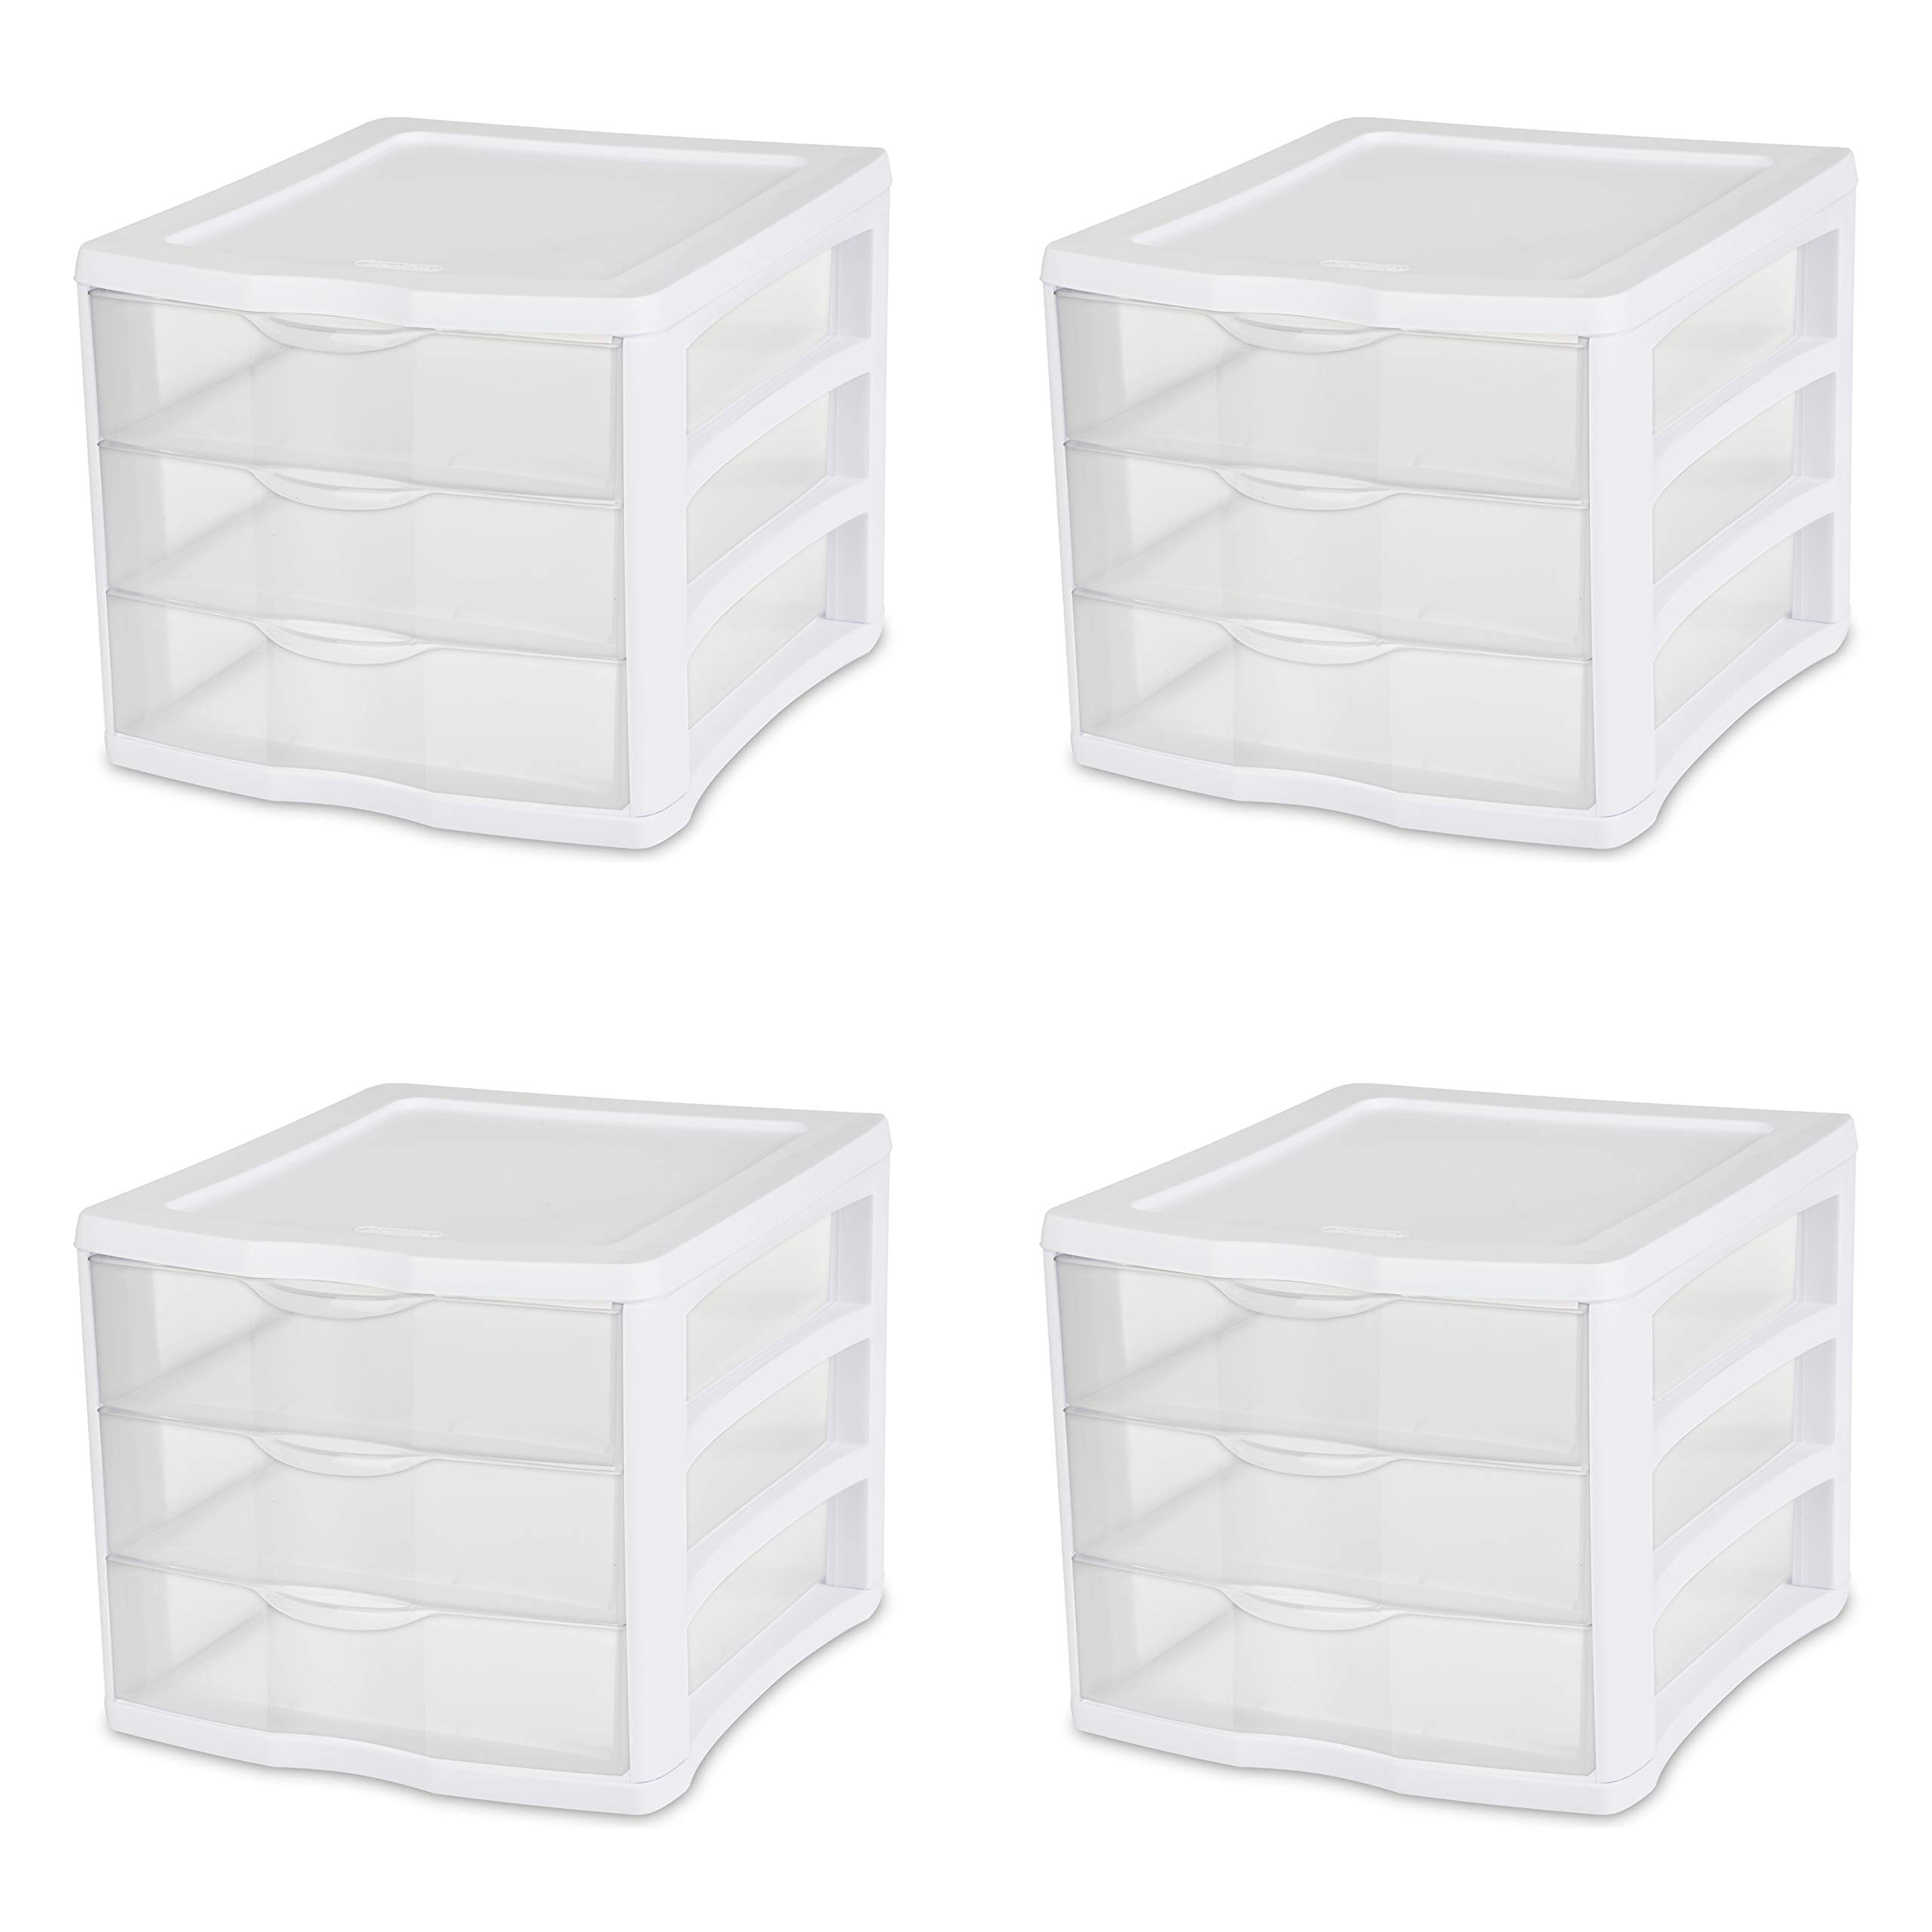 Sterilite 17918004 3 Drawer Unit, White Frame with Clear Drawers, 4-Pack by STERILITE